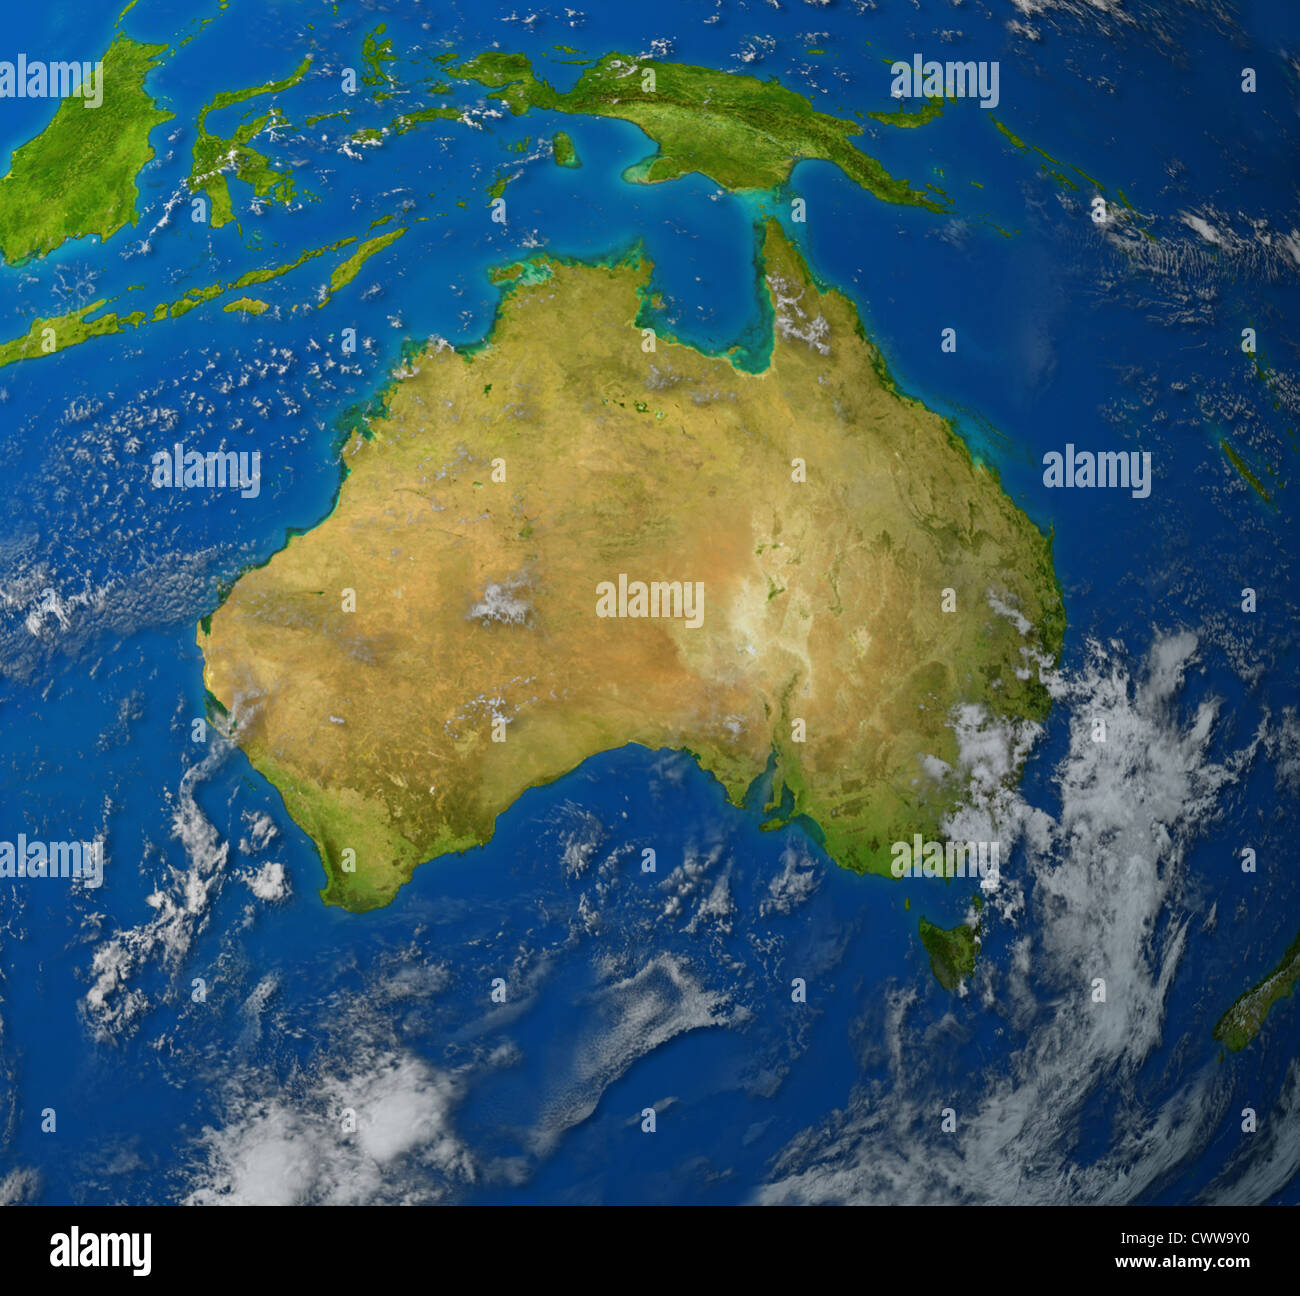 Australia Realistic Map Of The Continent Of Oceana In The Pacific - Australia continental map